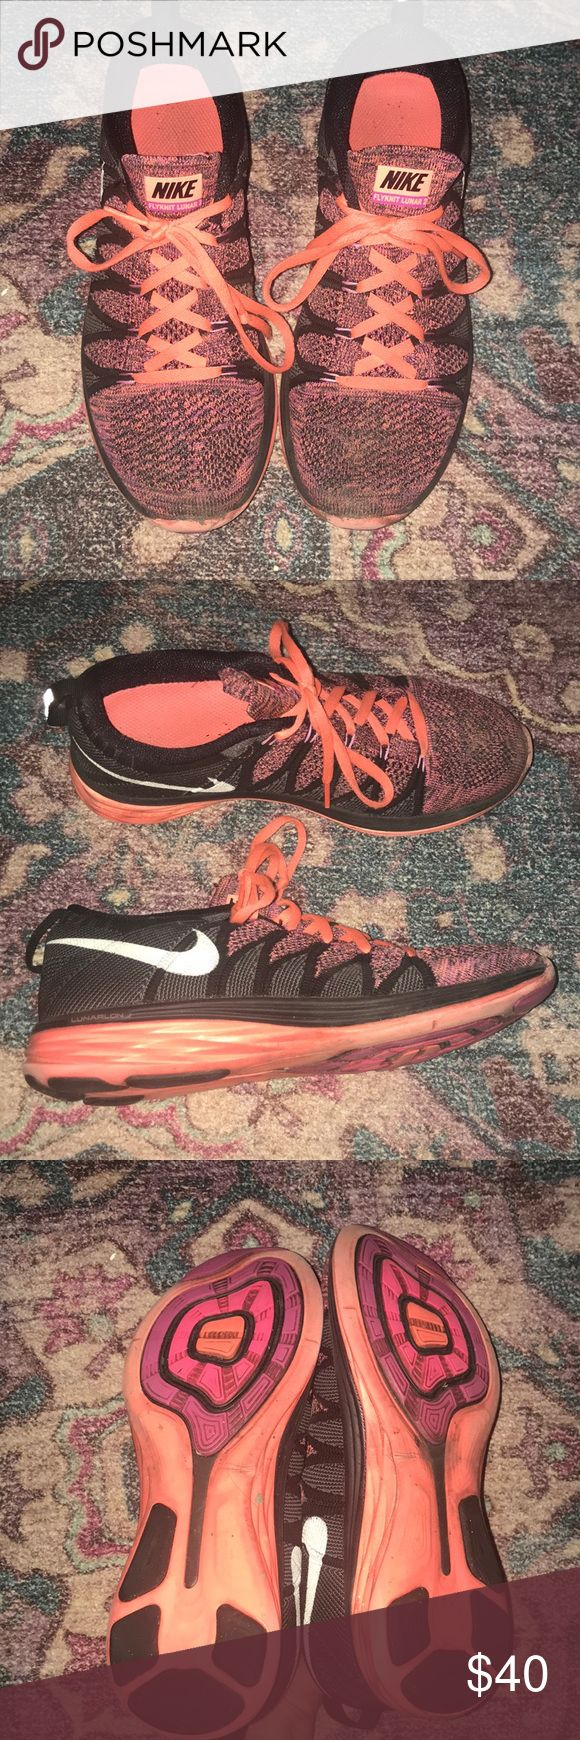 Nike flyknit lunar 2 Nike flyknit lunar 2  Good used condition Great running sneaks! Nike Shoes Athletic Shoes